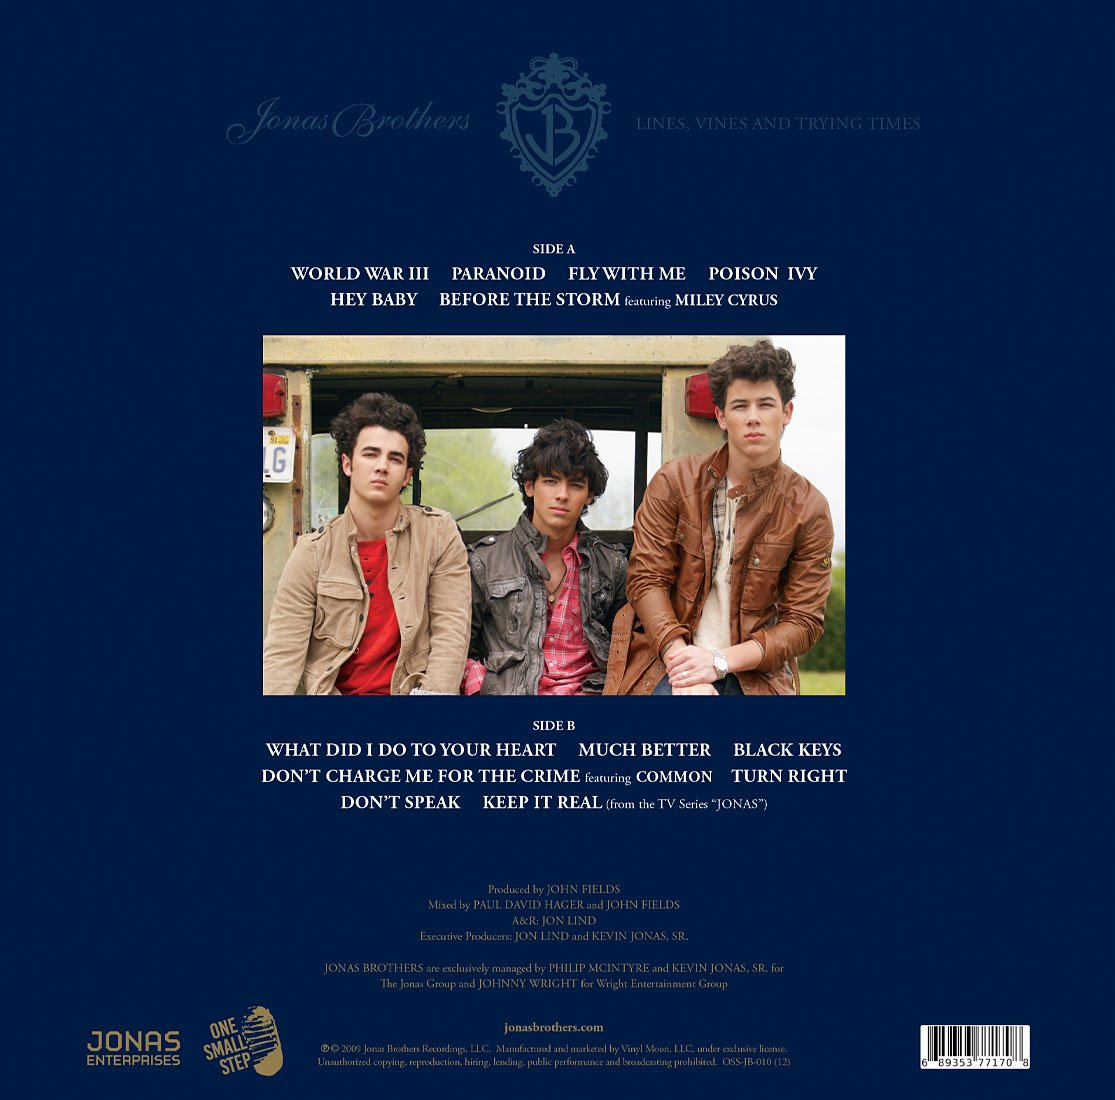 Jonas Brothers - Lines, Vines & Trying Times LP (Coke bottle clear vinyl!) - JONAS VINYL CLUB